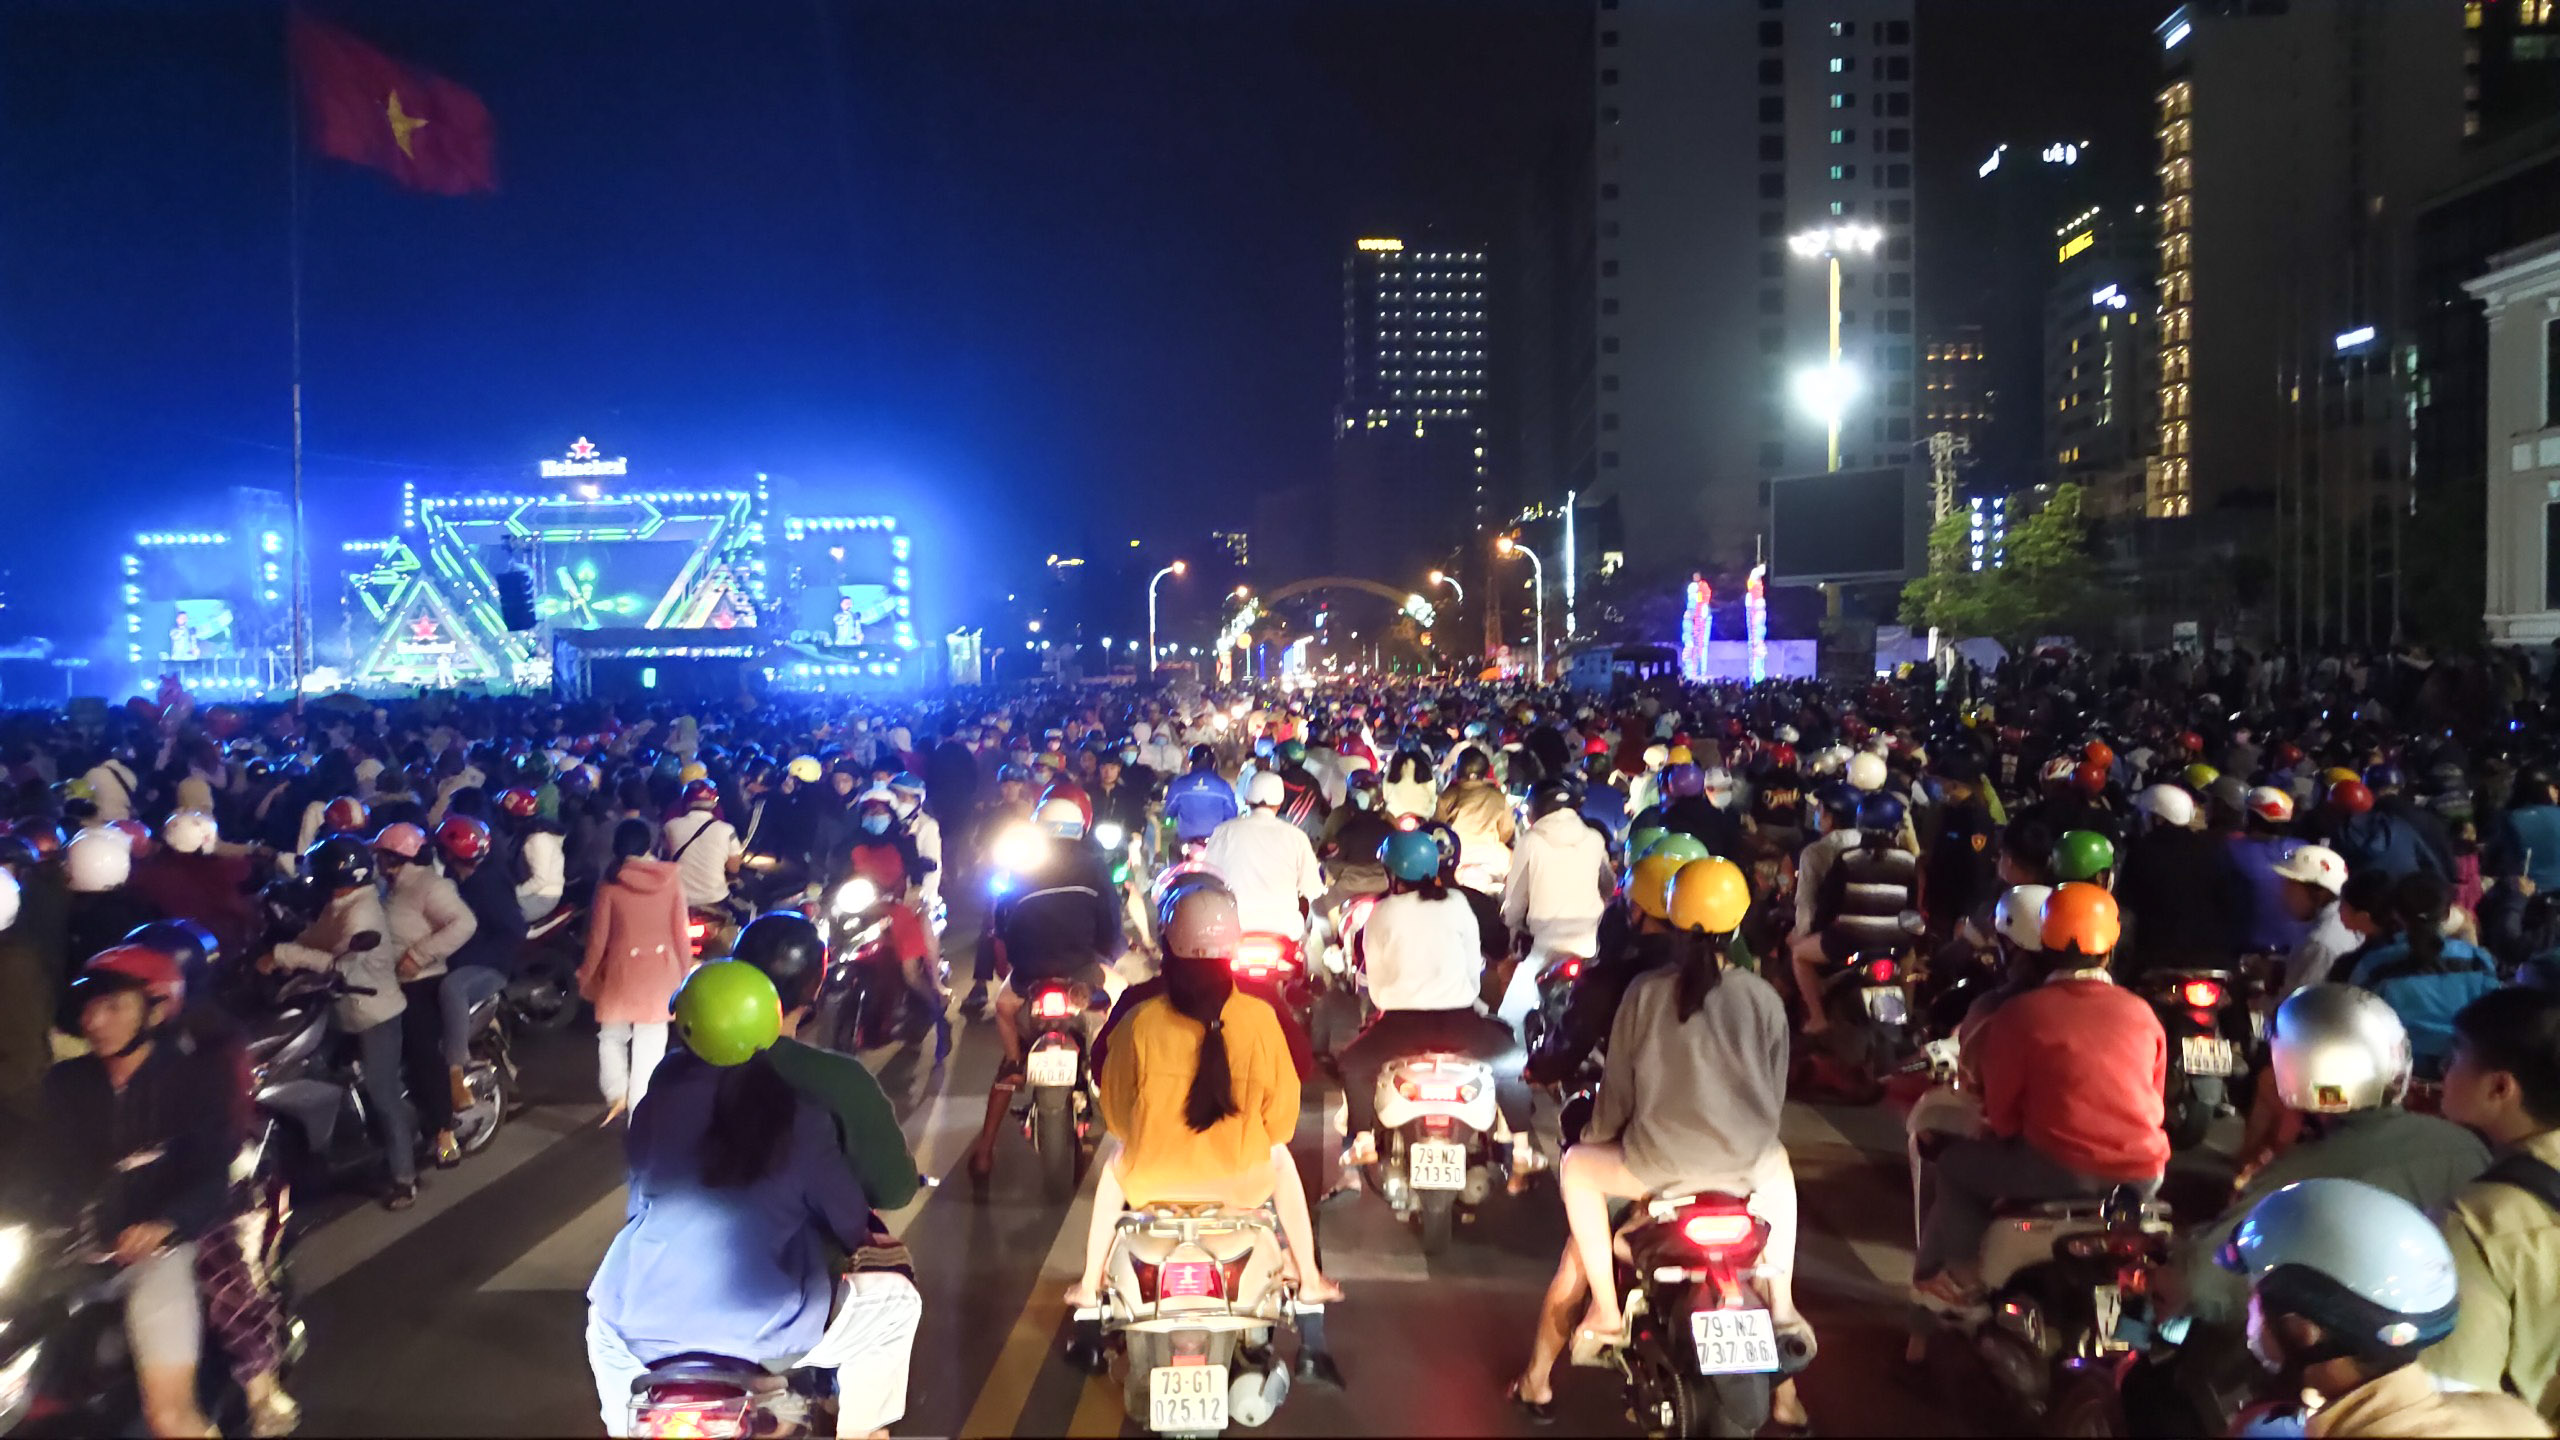 A lot of people flock to 2-4 Square area on New Year's Eve